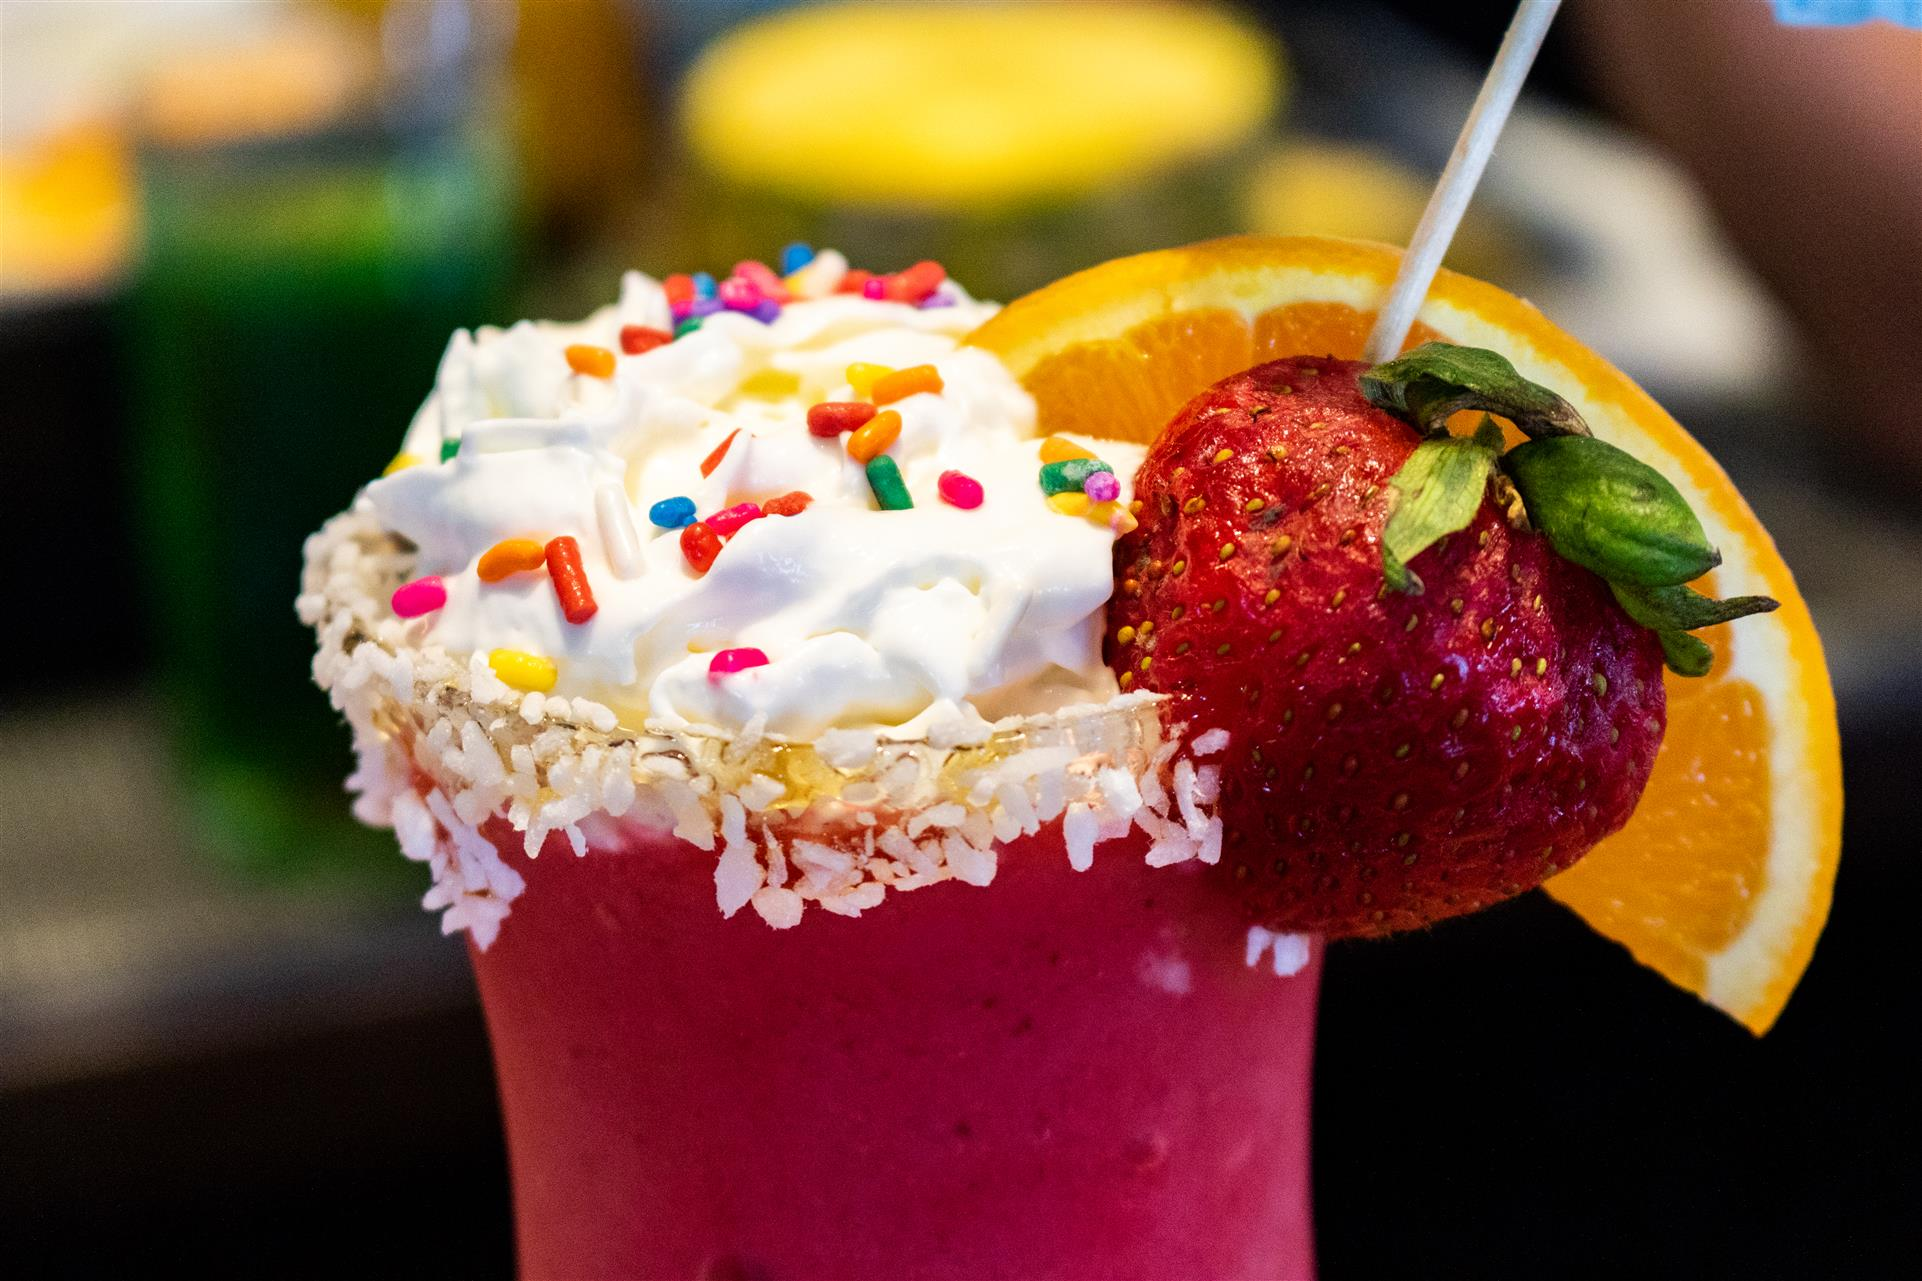 strawberry cocktail with a whole strawberry, whipped cream, sprinkles and an orange wedge